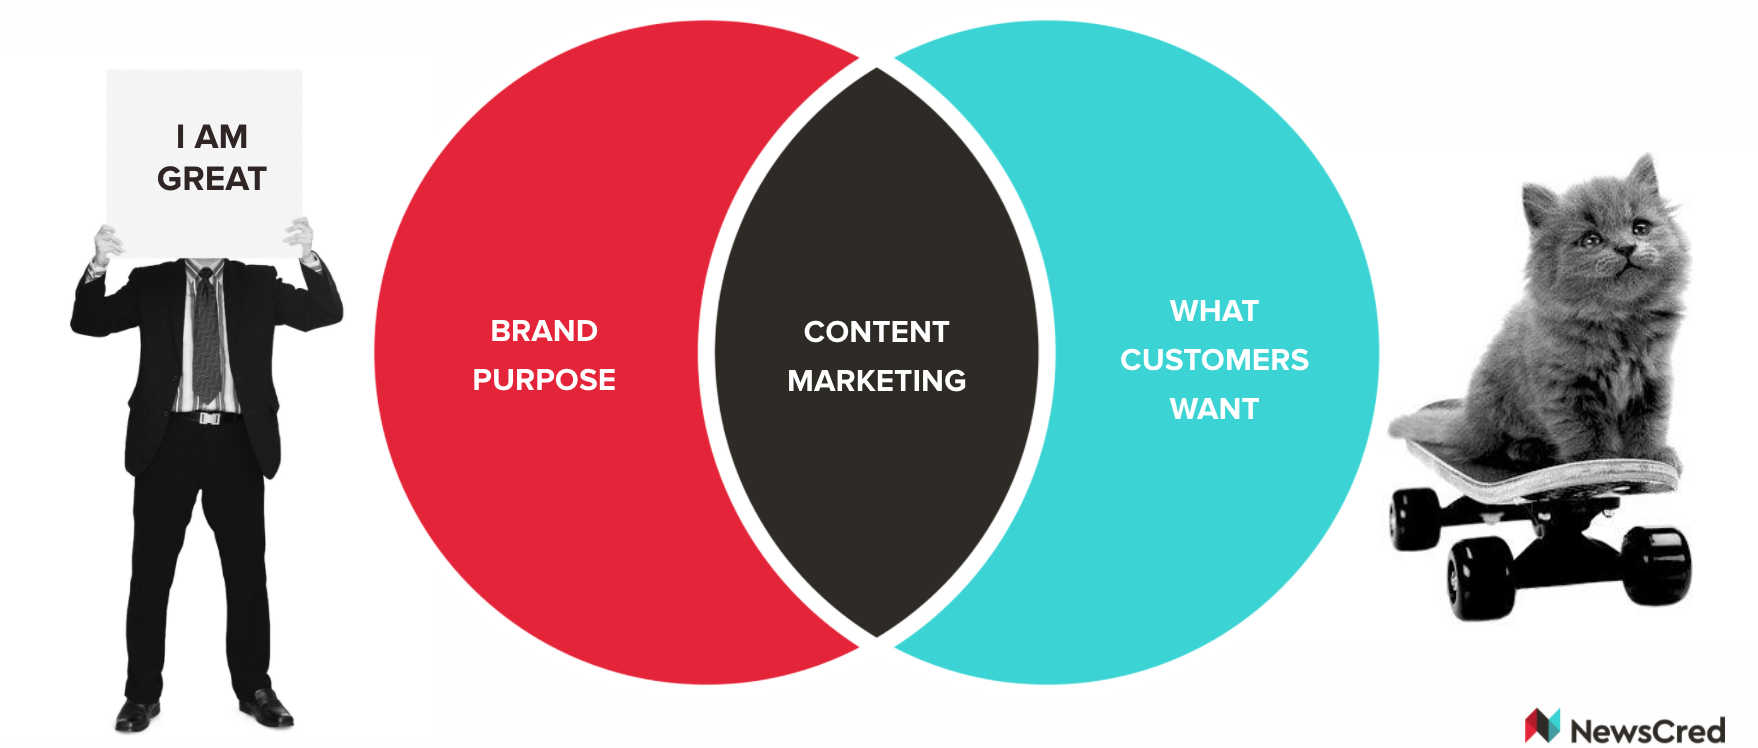 content marketing between brand purpose and what customers want